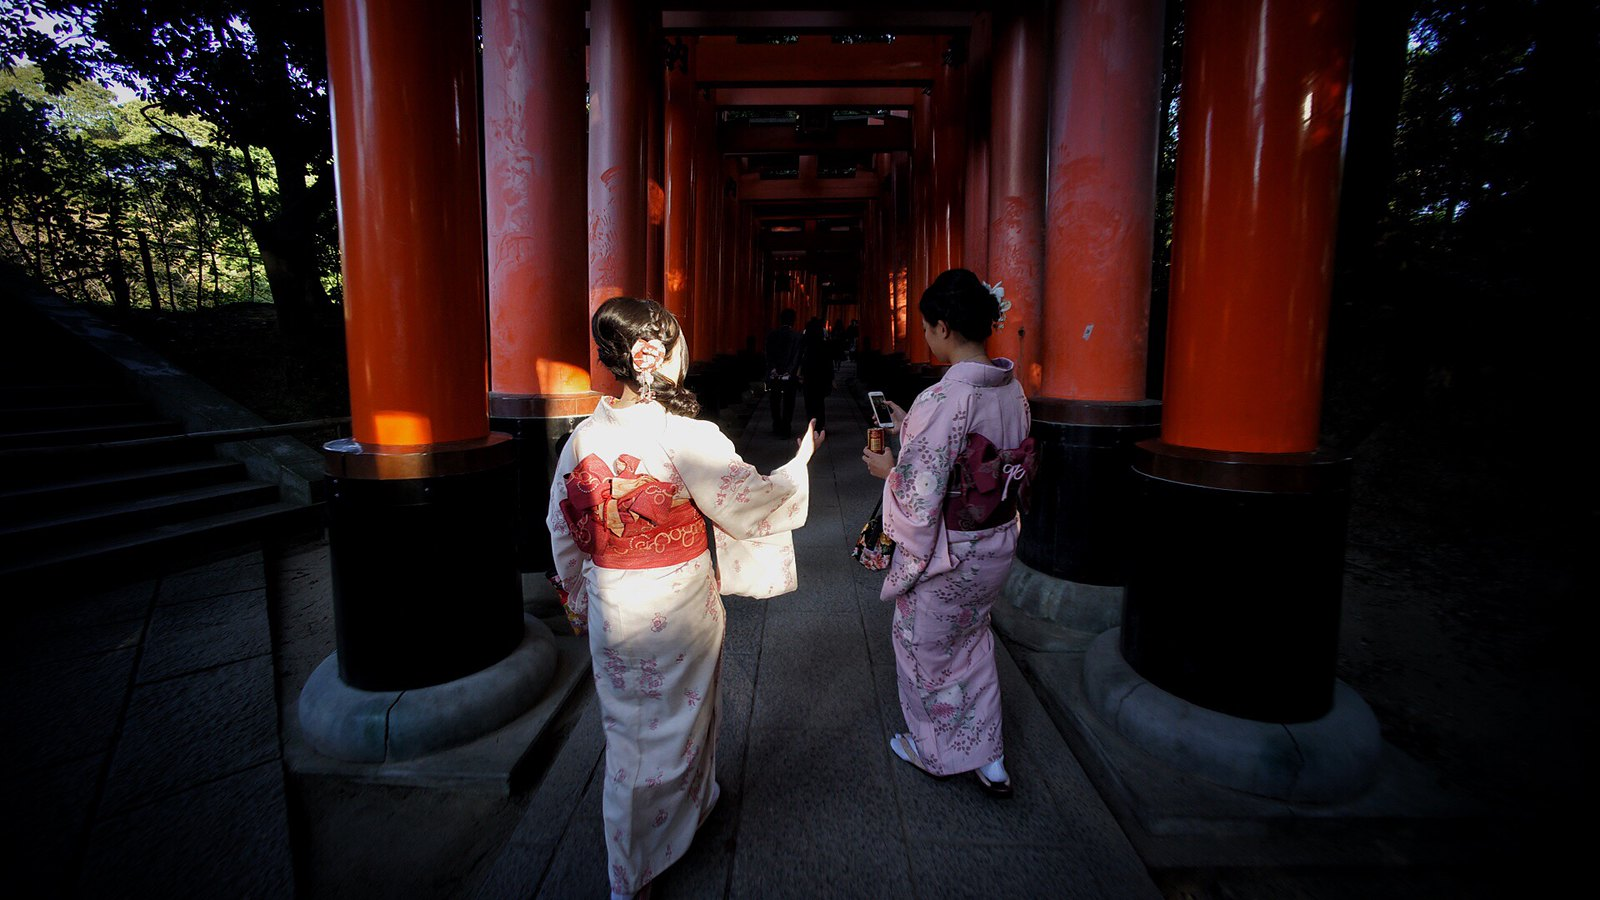 """Take my phone bro"" #inari #Kyoto #japan15 #SonyA7 #Voigtlander12mm"